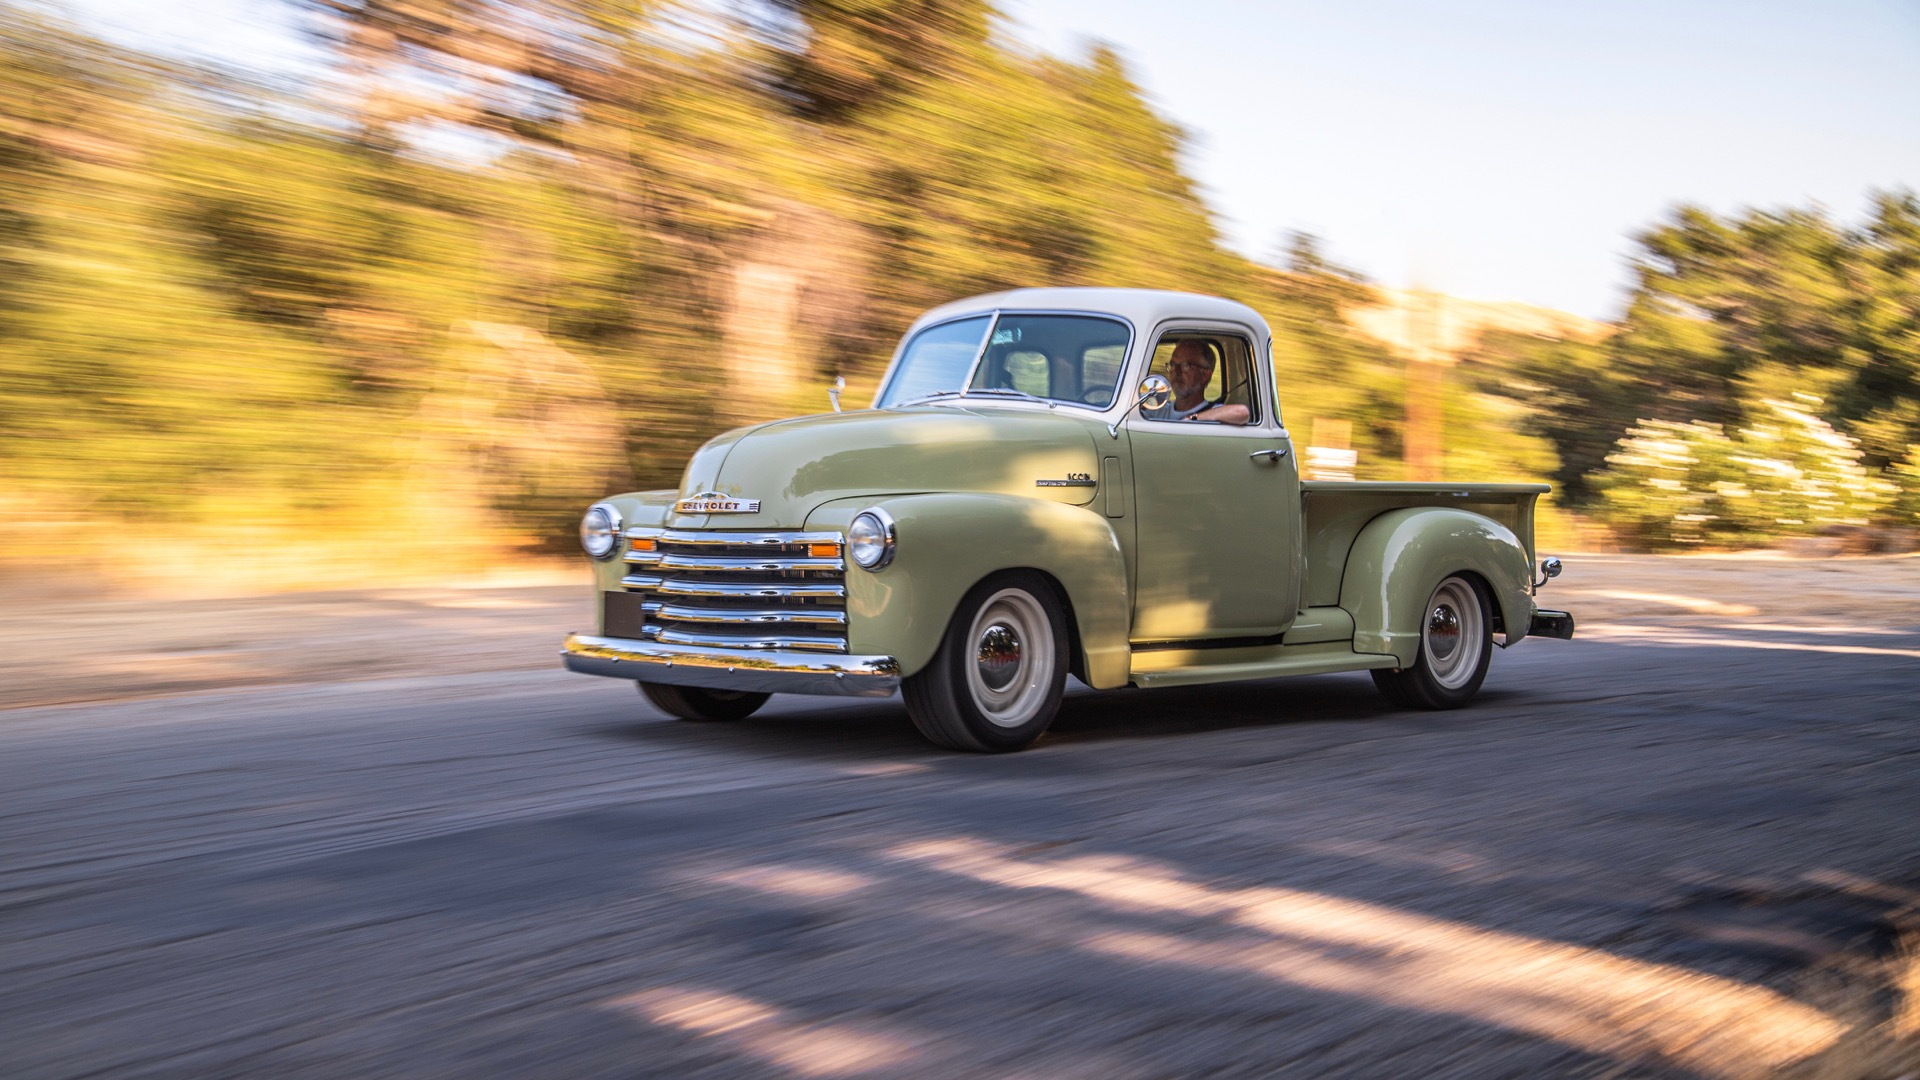 Icon 1950 Chevrolet Thriftmaster pickup Truck